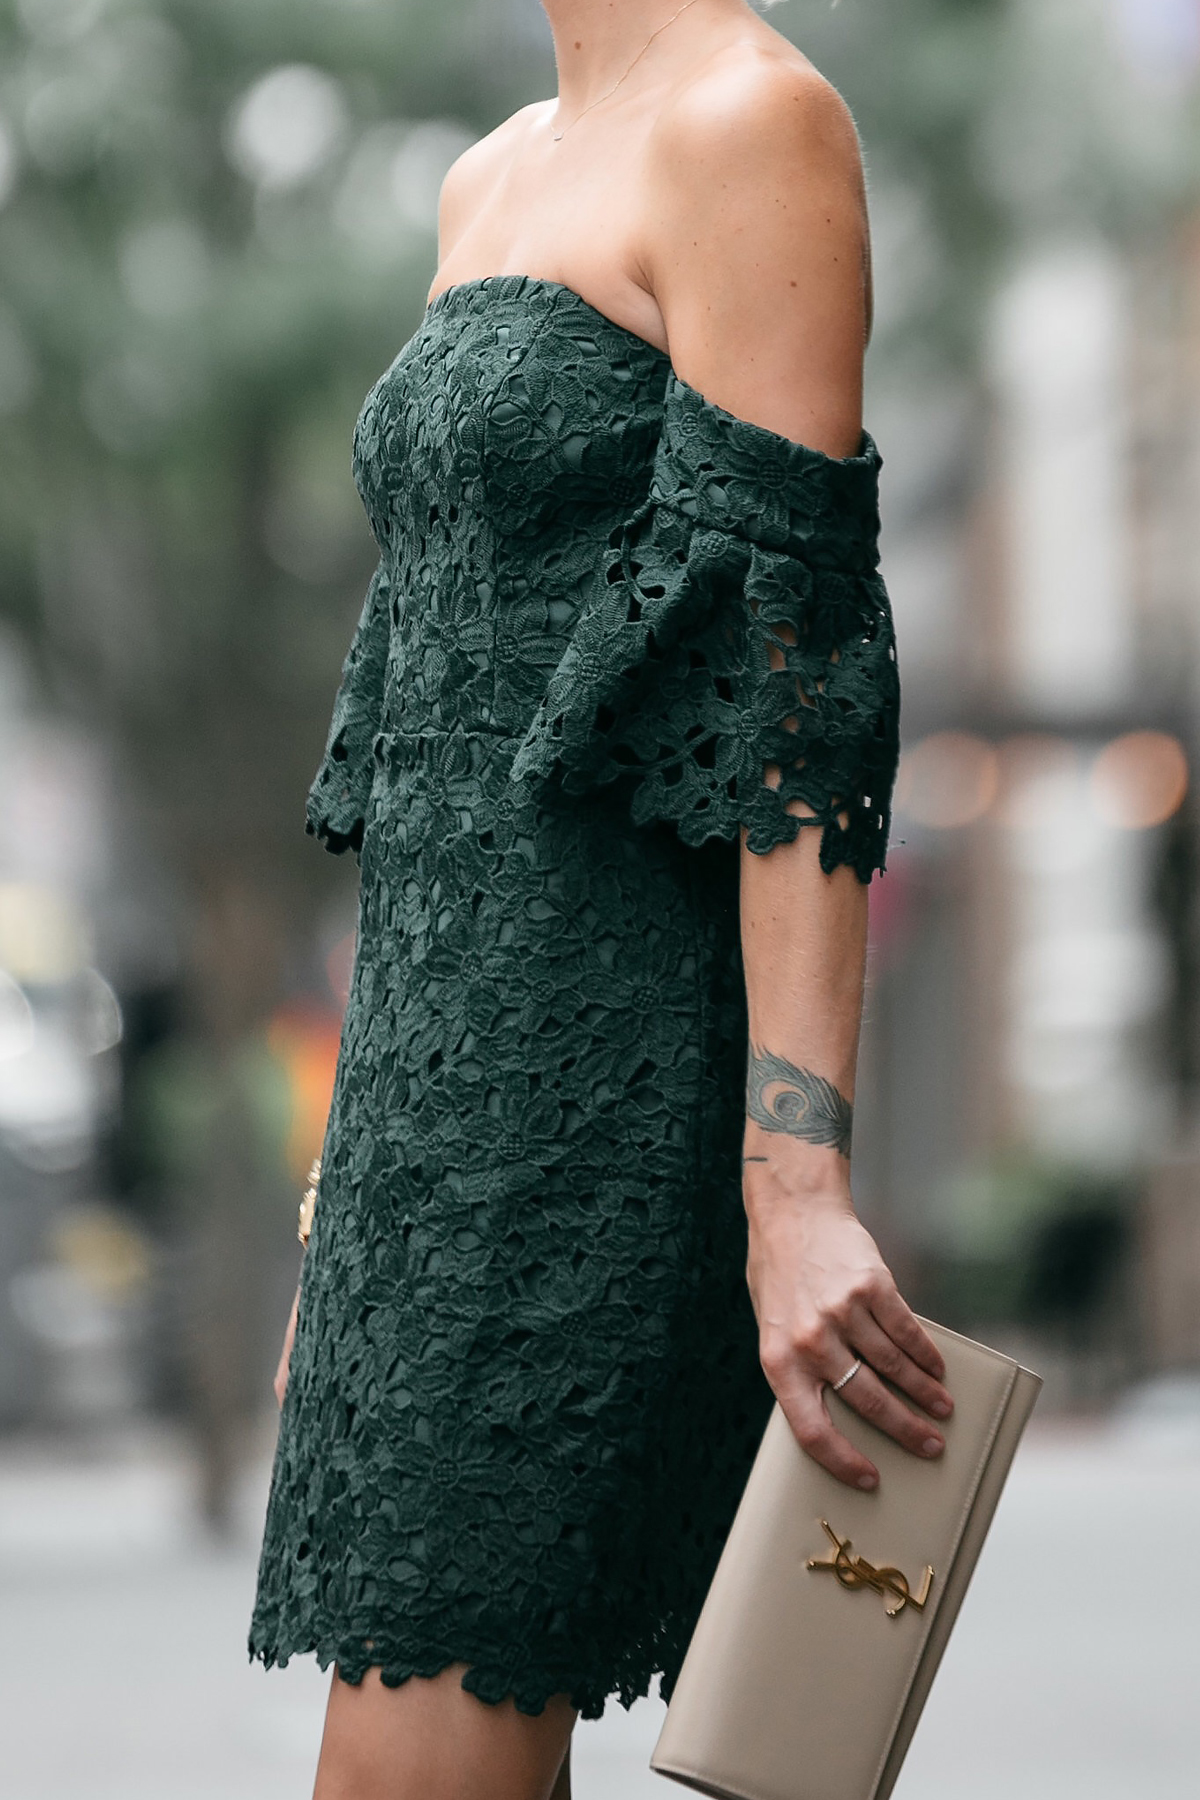 Club Monaco Off-the-Shoulder Green Lace Dress Saint Laurent Monogram Clutch Fashion Jackson Dallas Blogger Fashion Blogger Street Style